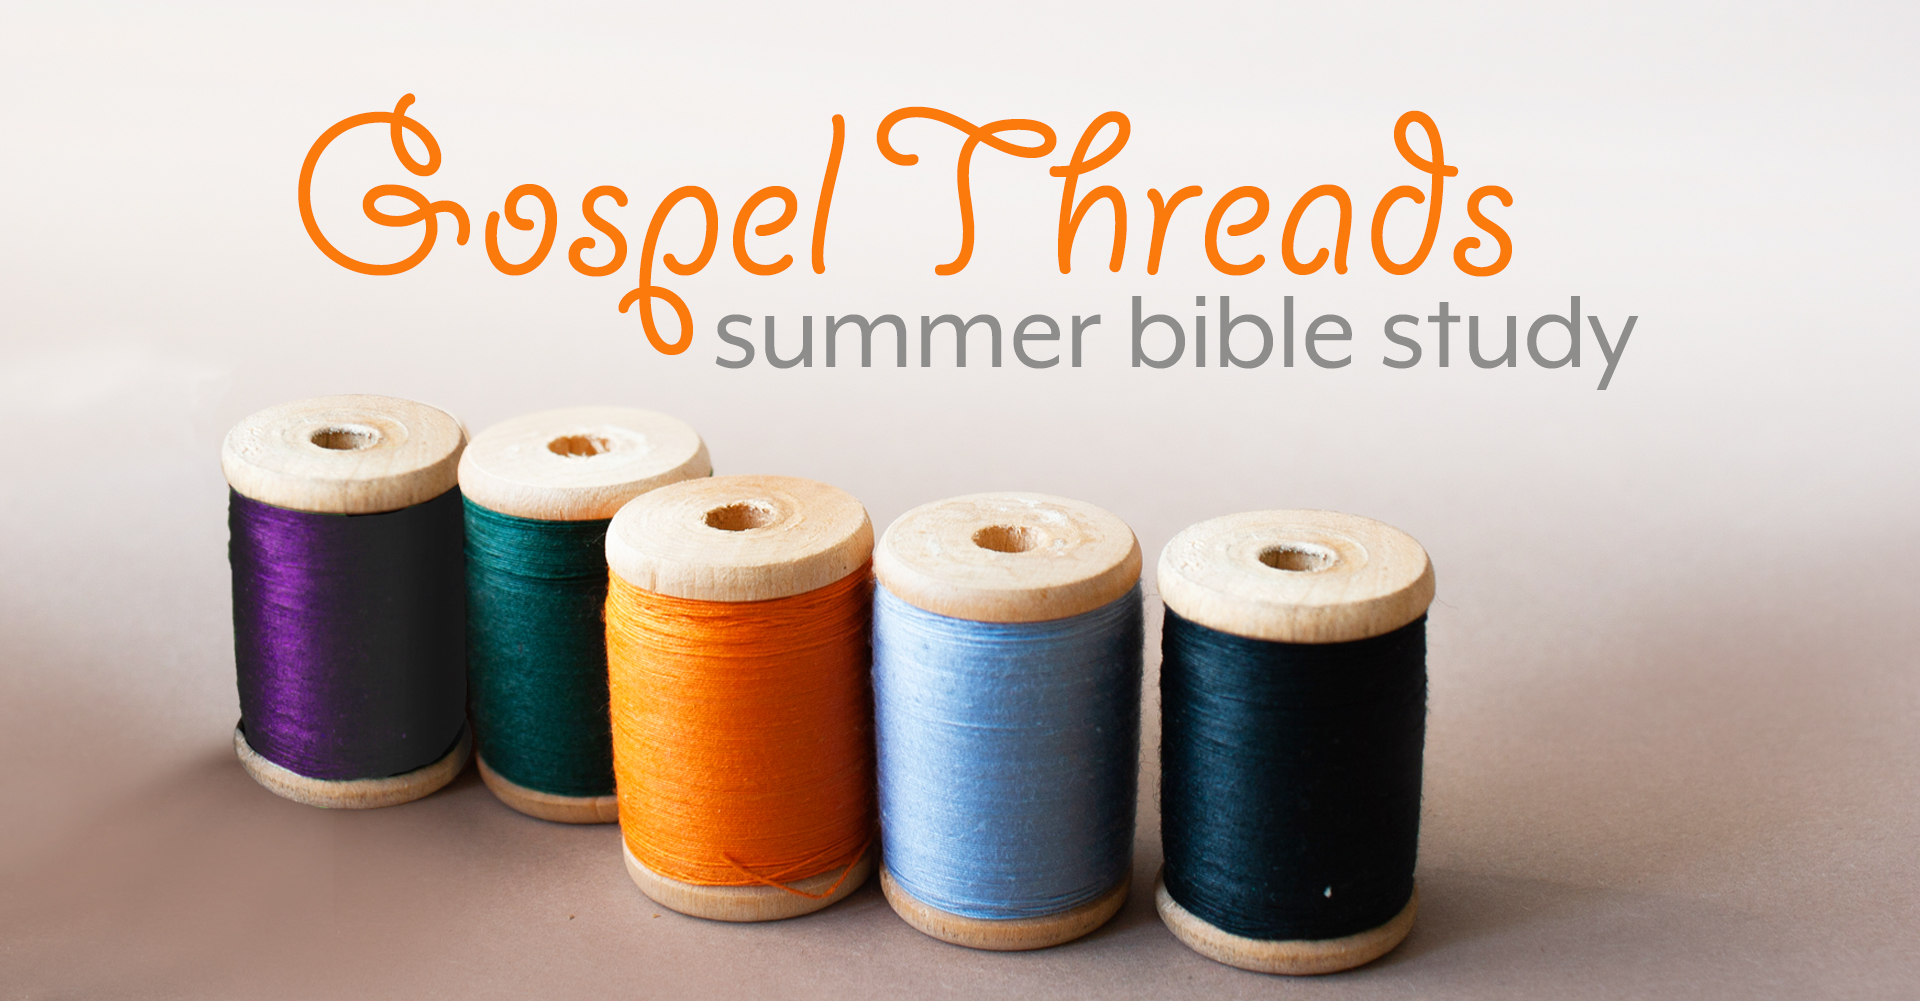 Gospel Threads_bible_study_2018_1x1.jpg